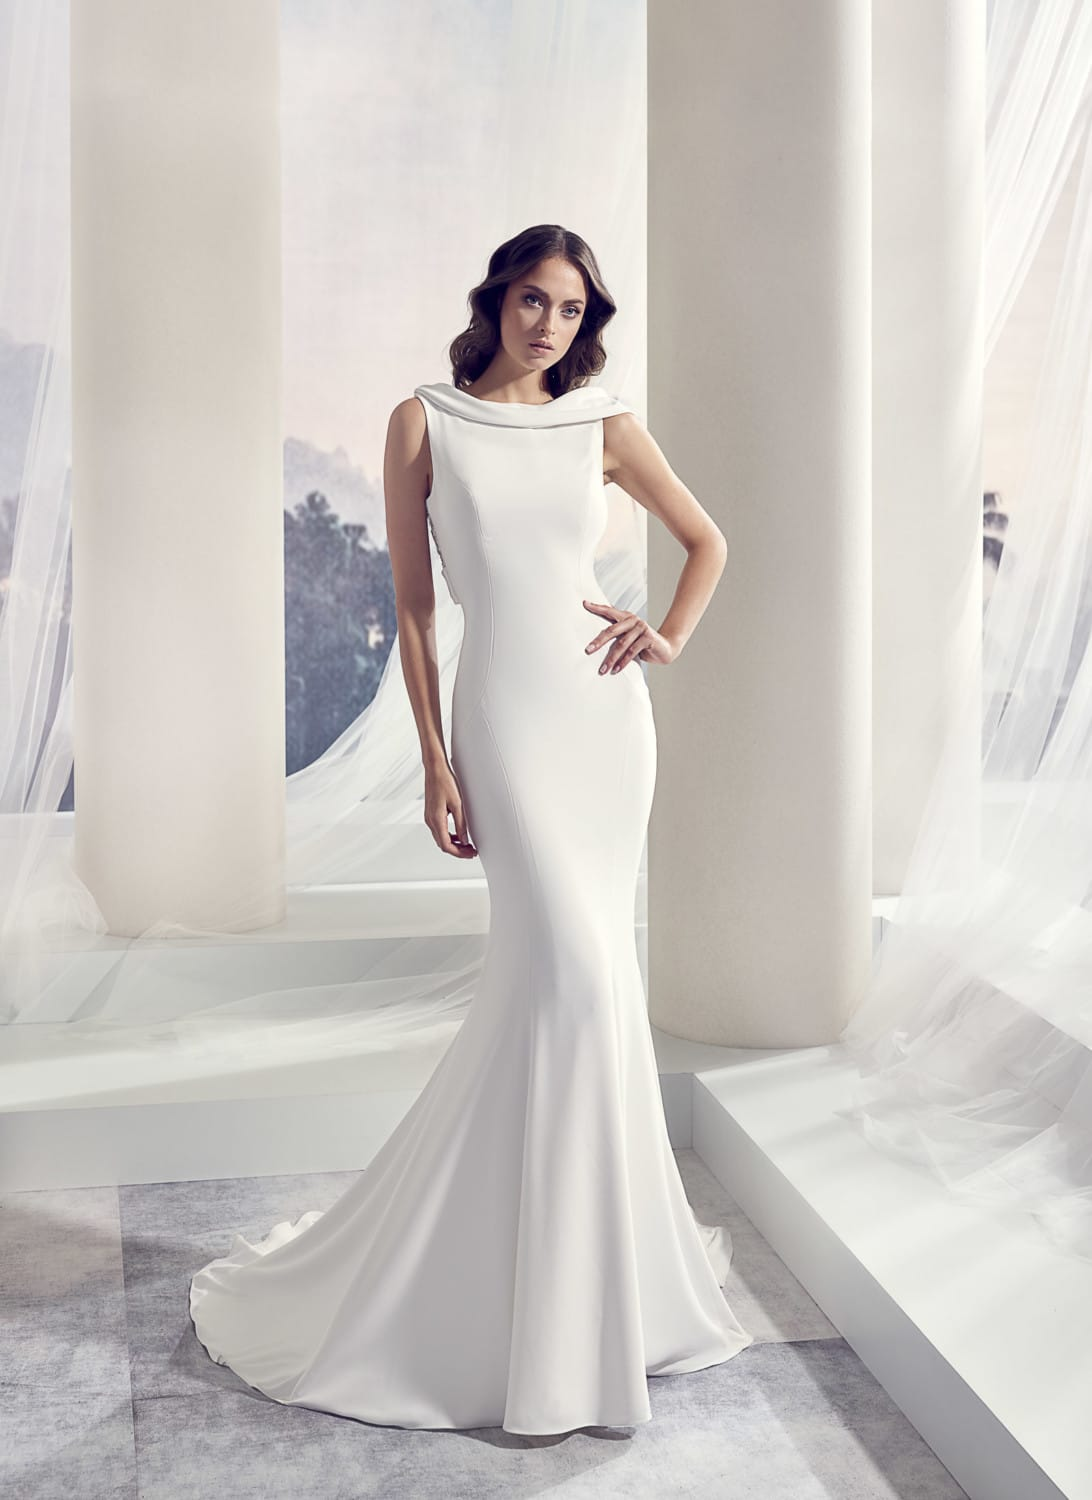 Modeca wedding dress - Sell My Wedding Dress Online | Sell My ...